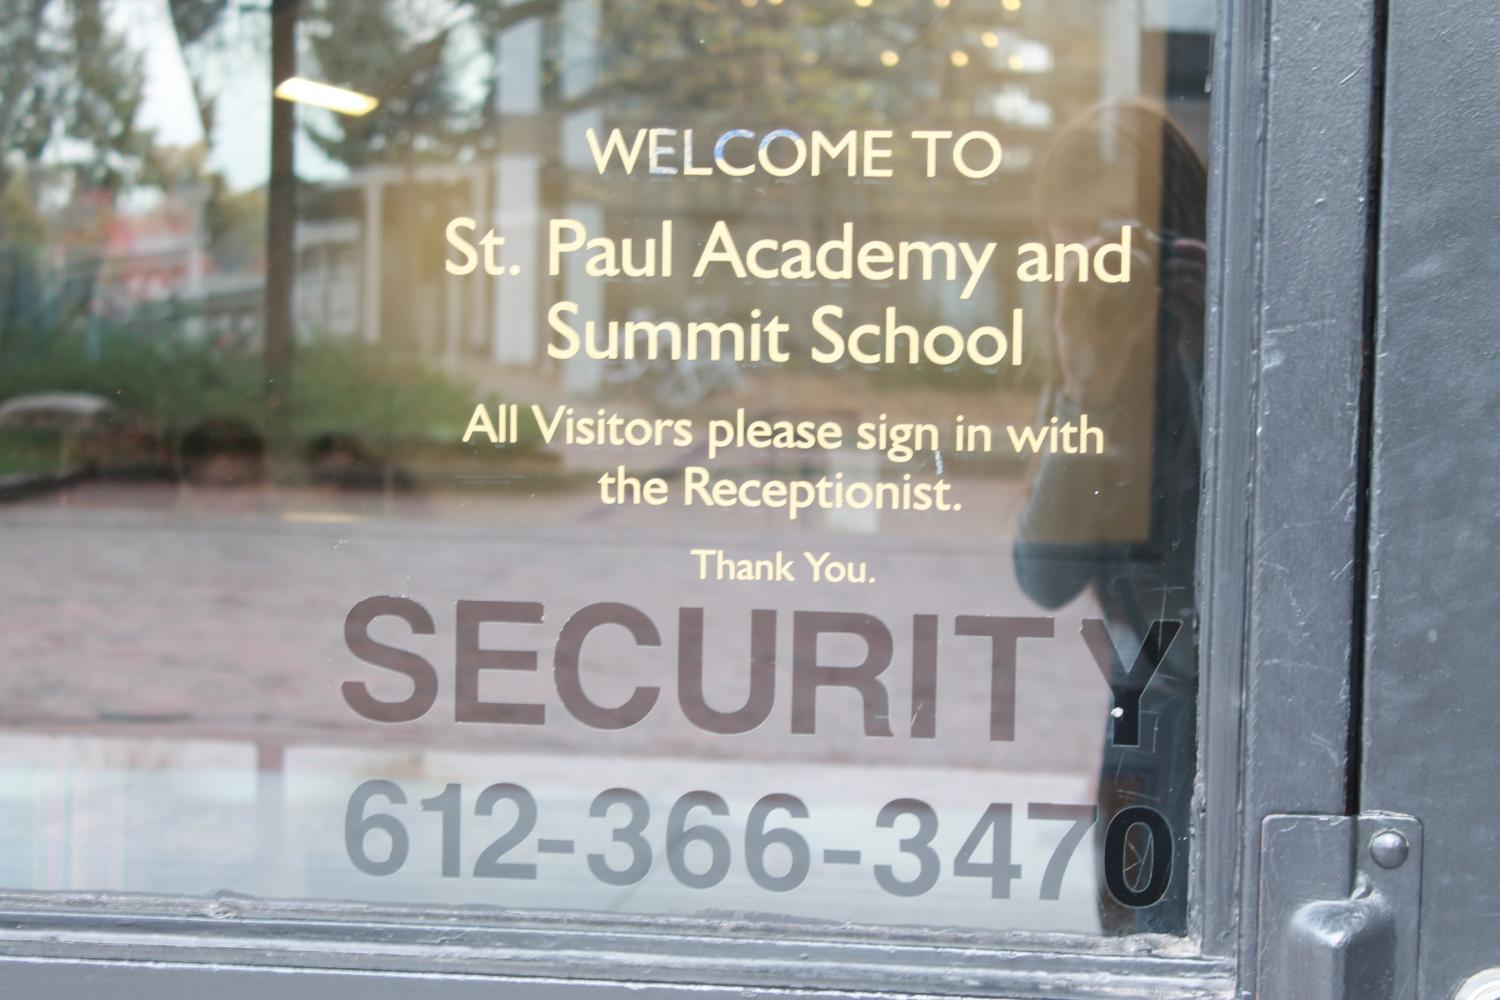 Community+members+can+use+the+above+number+to+contact+security+officers+on+the+SPA+campus.